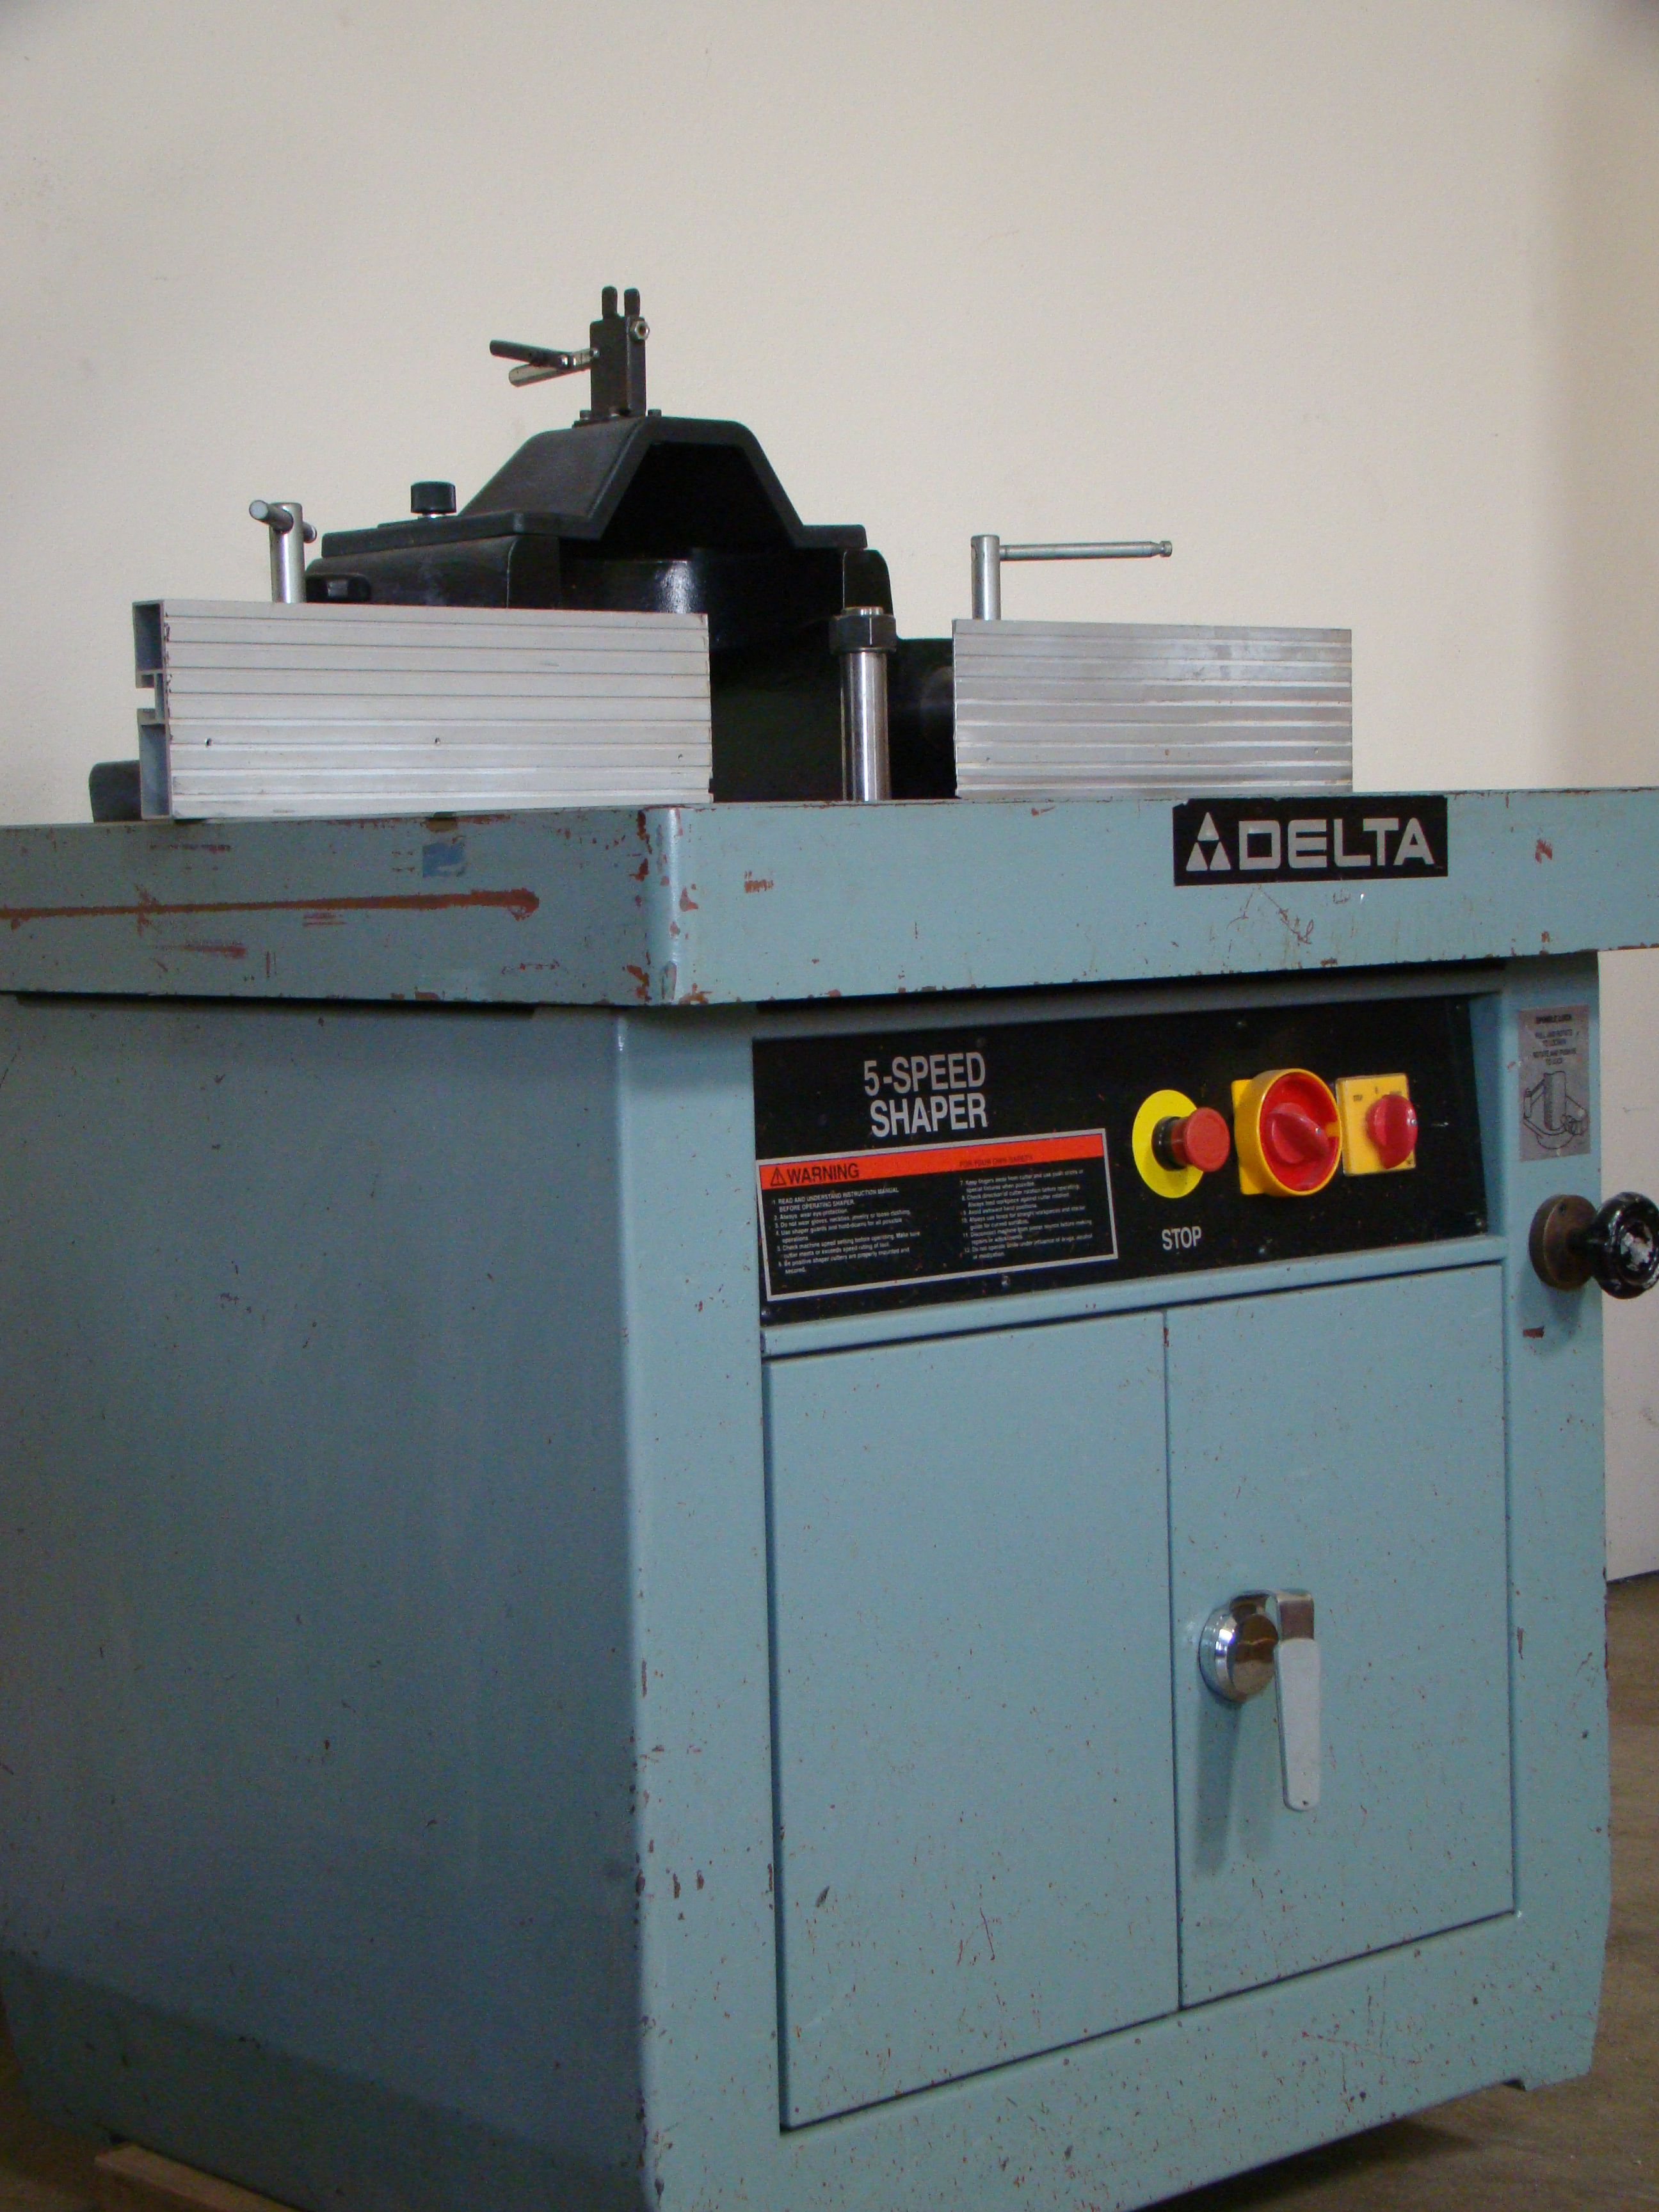 """Delta Wood Shaper 43-791 5 speed 1-1/4"""" Spindle 7.5 HP 200-220/440 Volt 3PH - Image 2 of 6"""